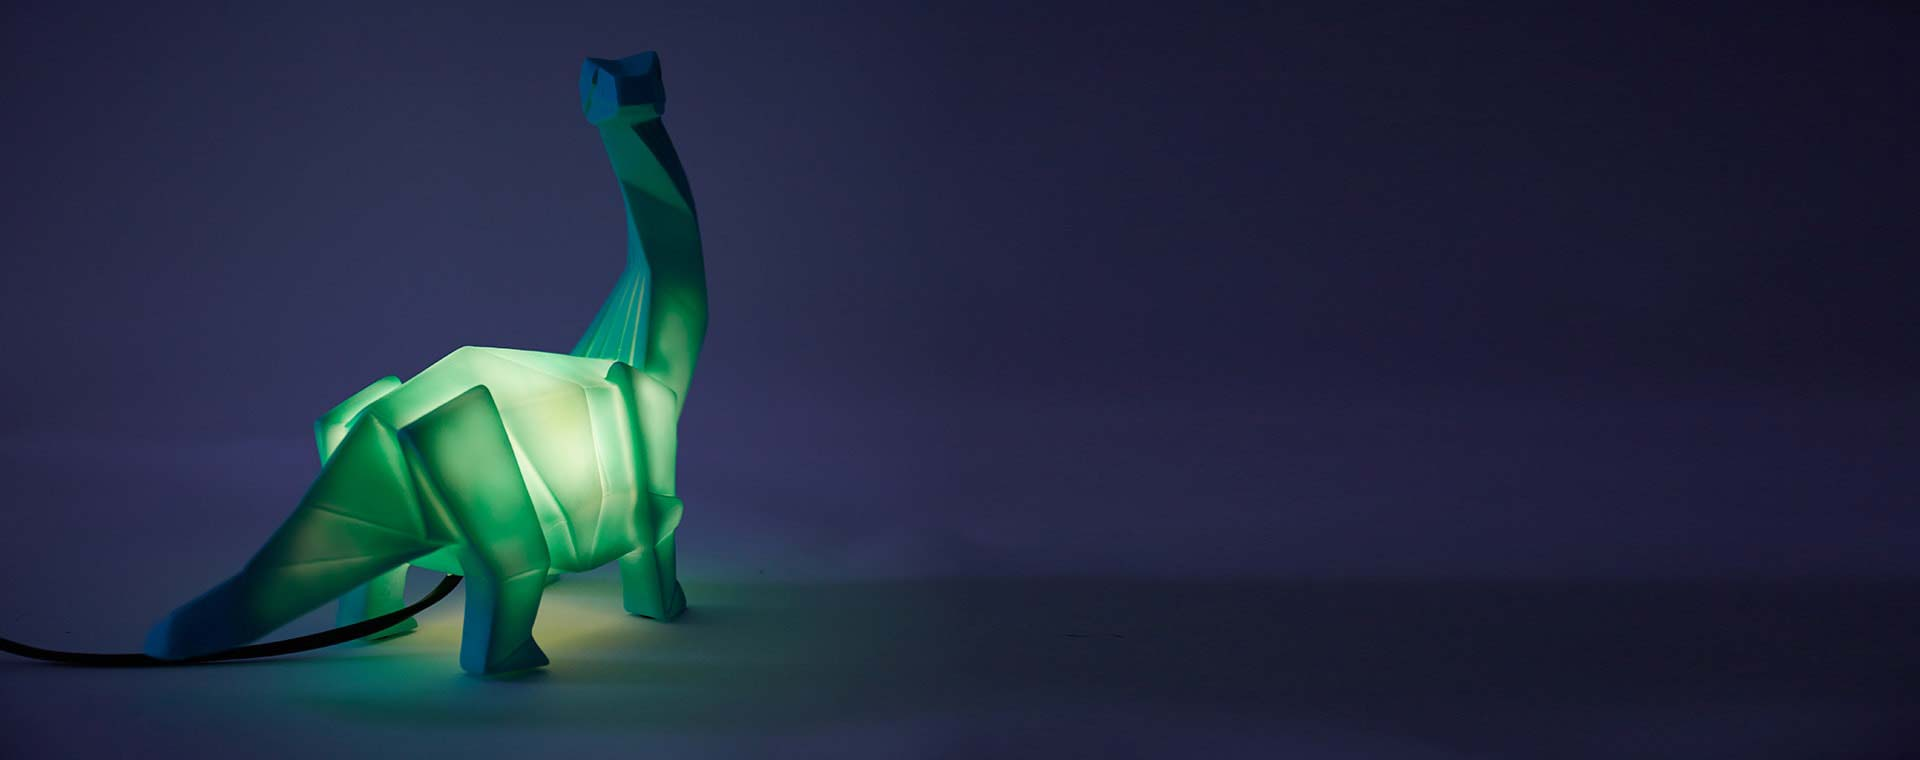 Green House of Disaster Diplodocus Dinosaur Lamp